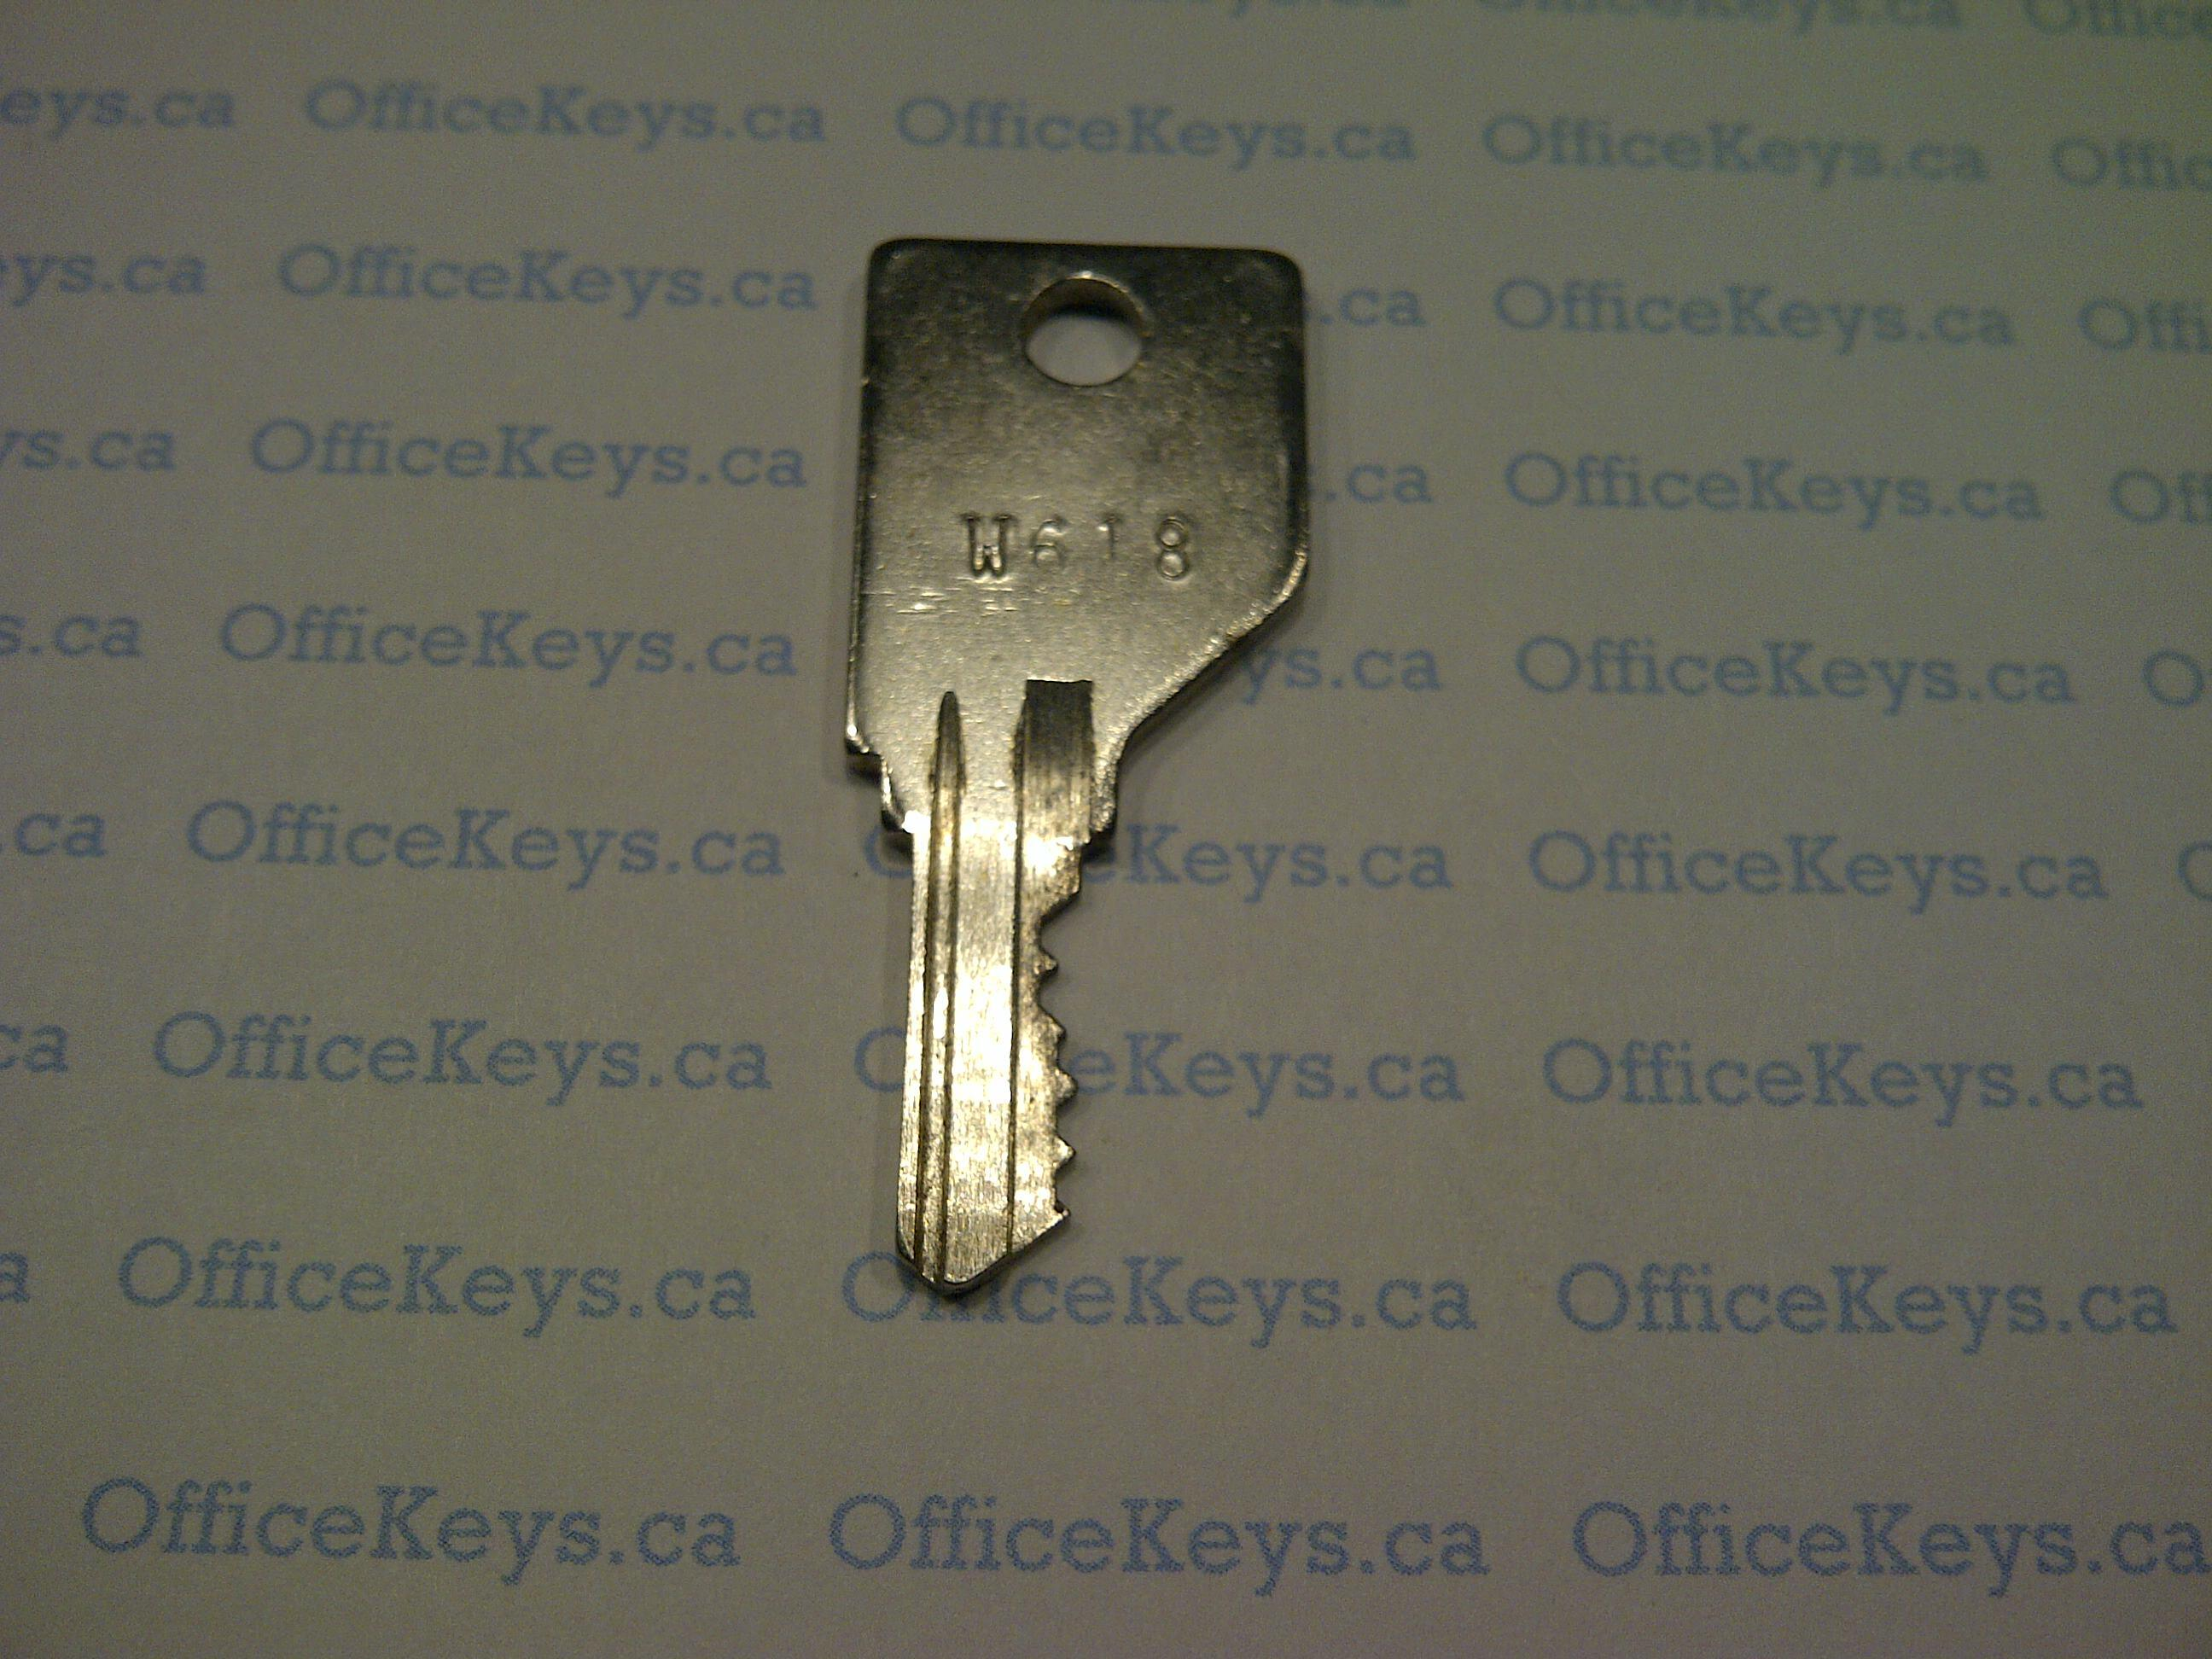 OfficeKeys.ca